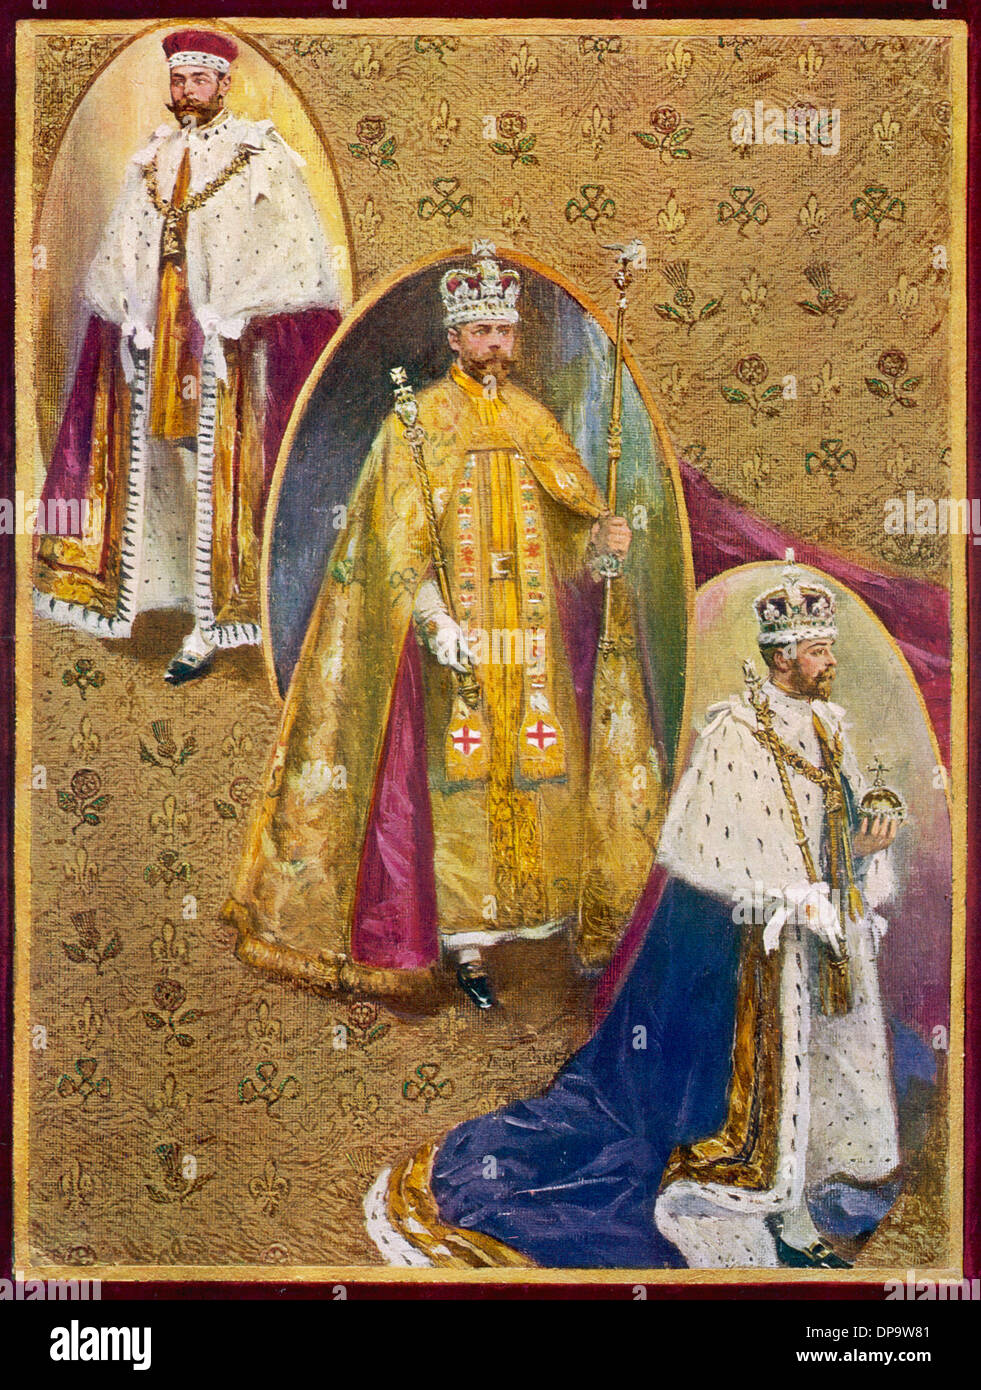 THREE CORONATION ROBES - Stock Image